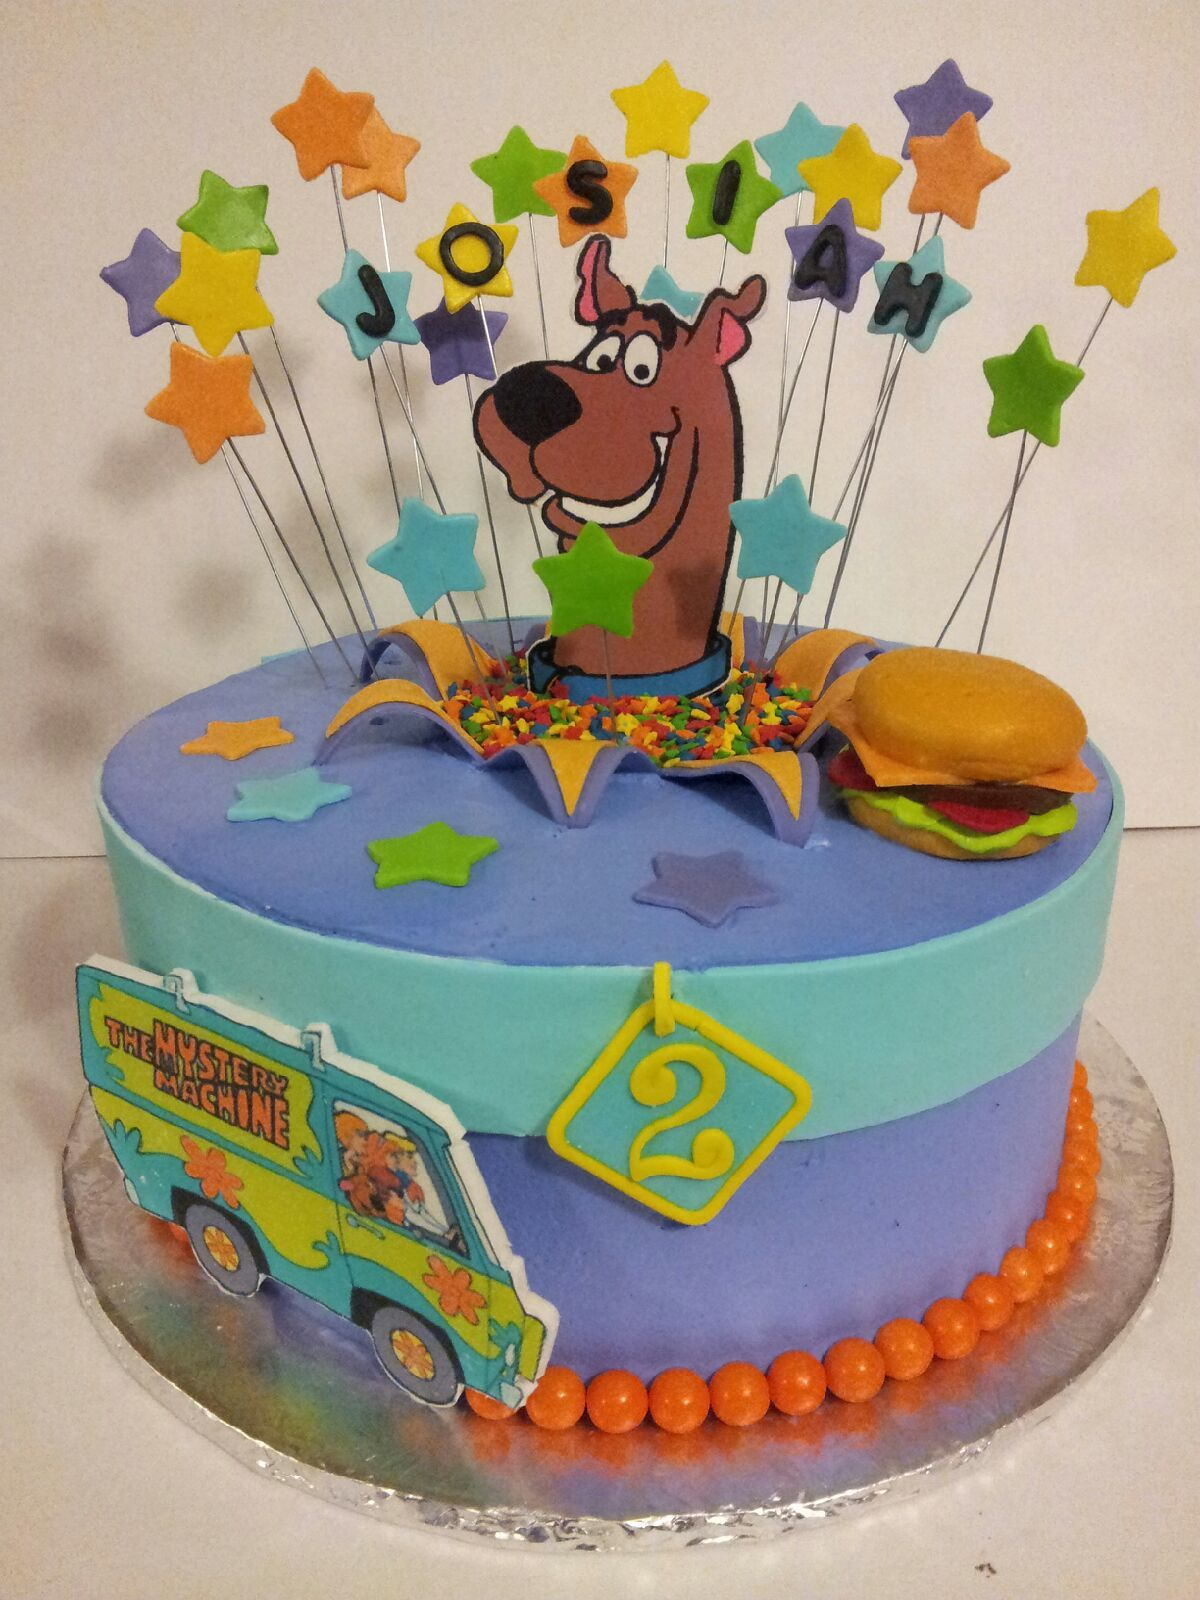 Scooby Doo Cake 11 round frosted in Pastry Pride Stars Scooby